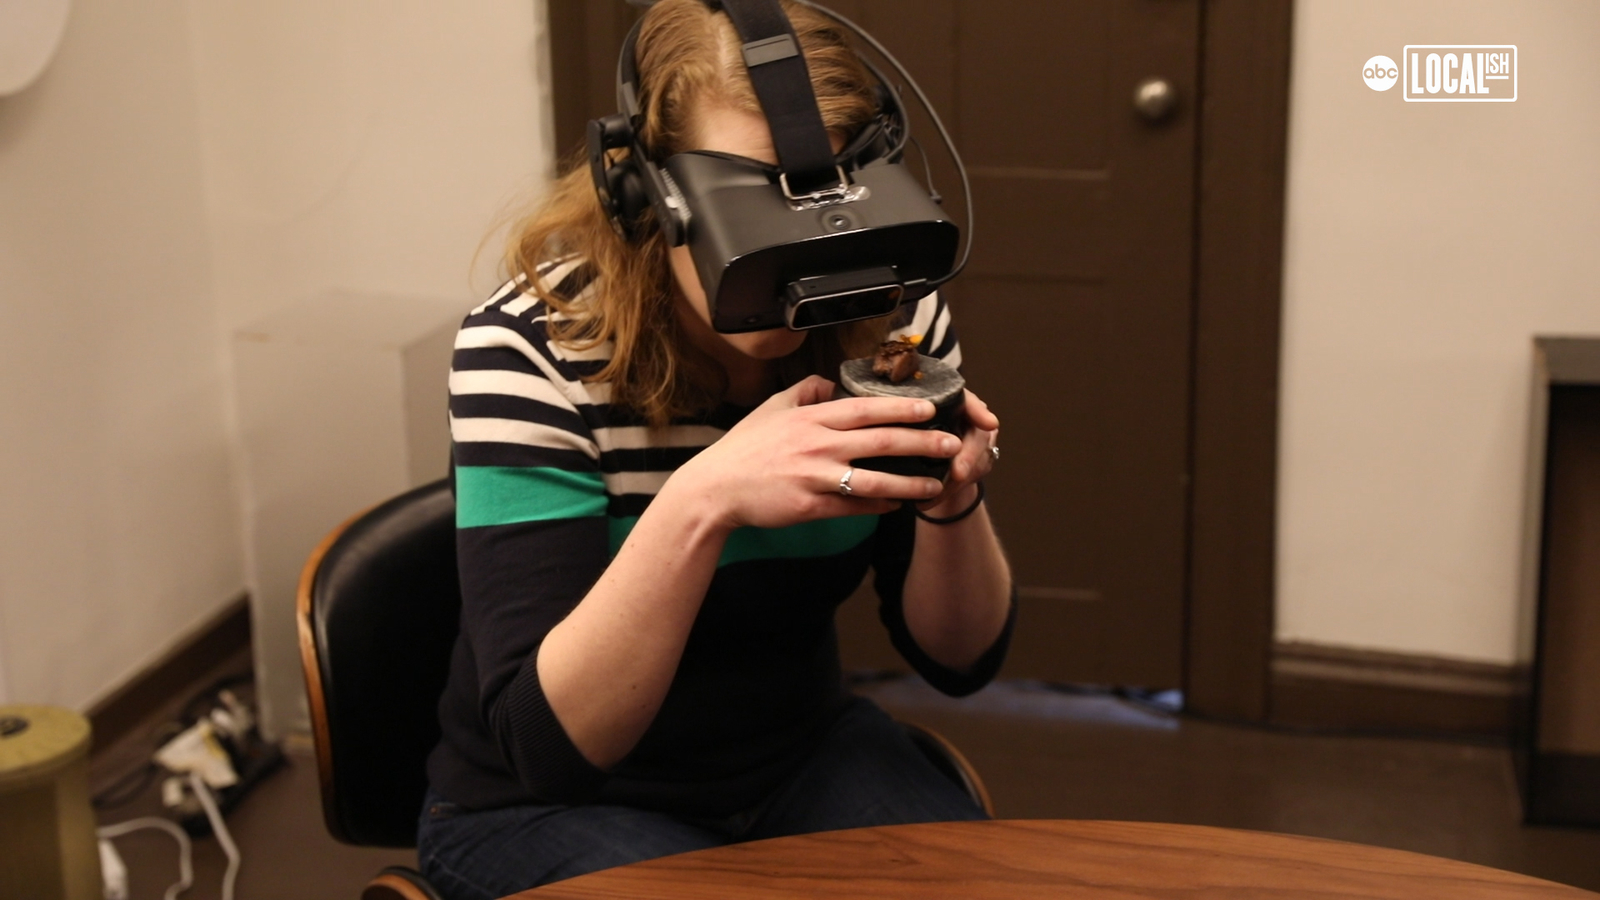 Virtual reality, food, and fantasy combine for a mind-altering dining experience